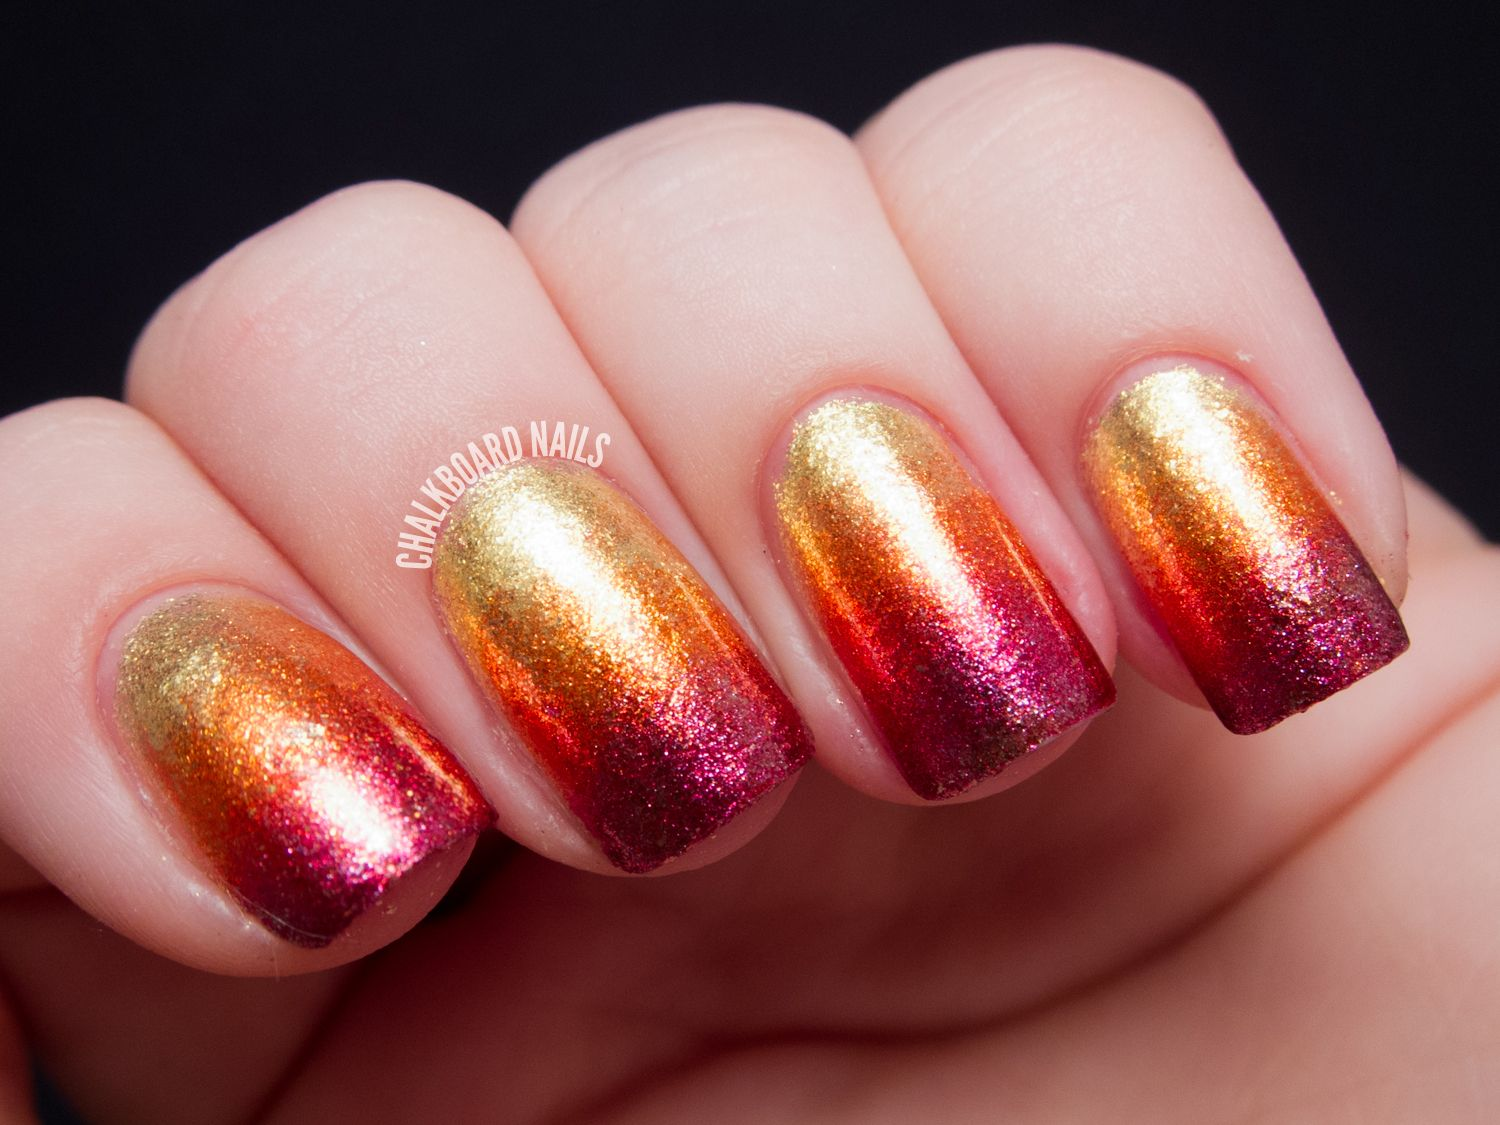 Stunning Ombre Nail Art Design Idea With Purple And Orange And Gold ...